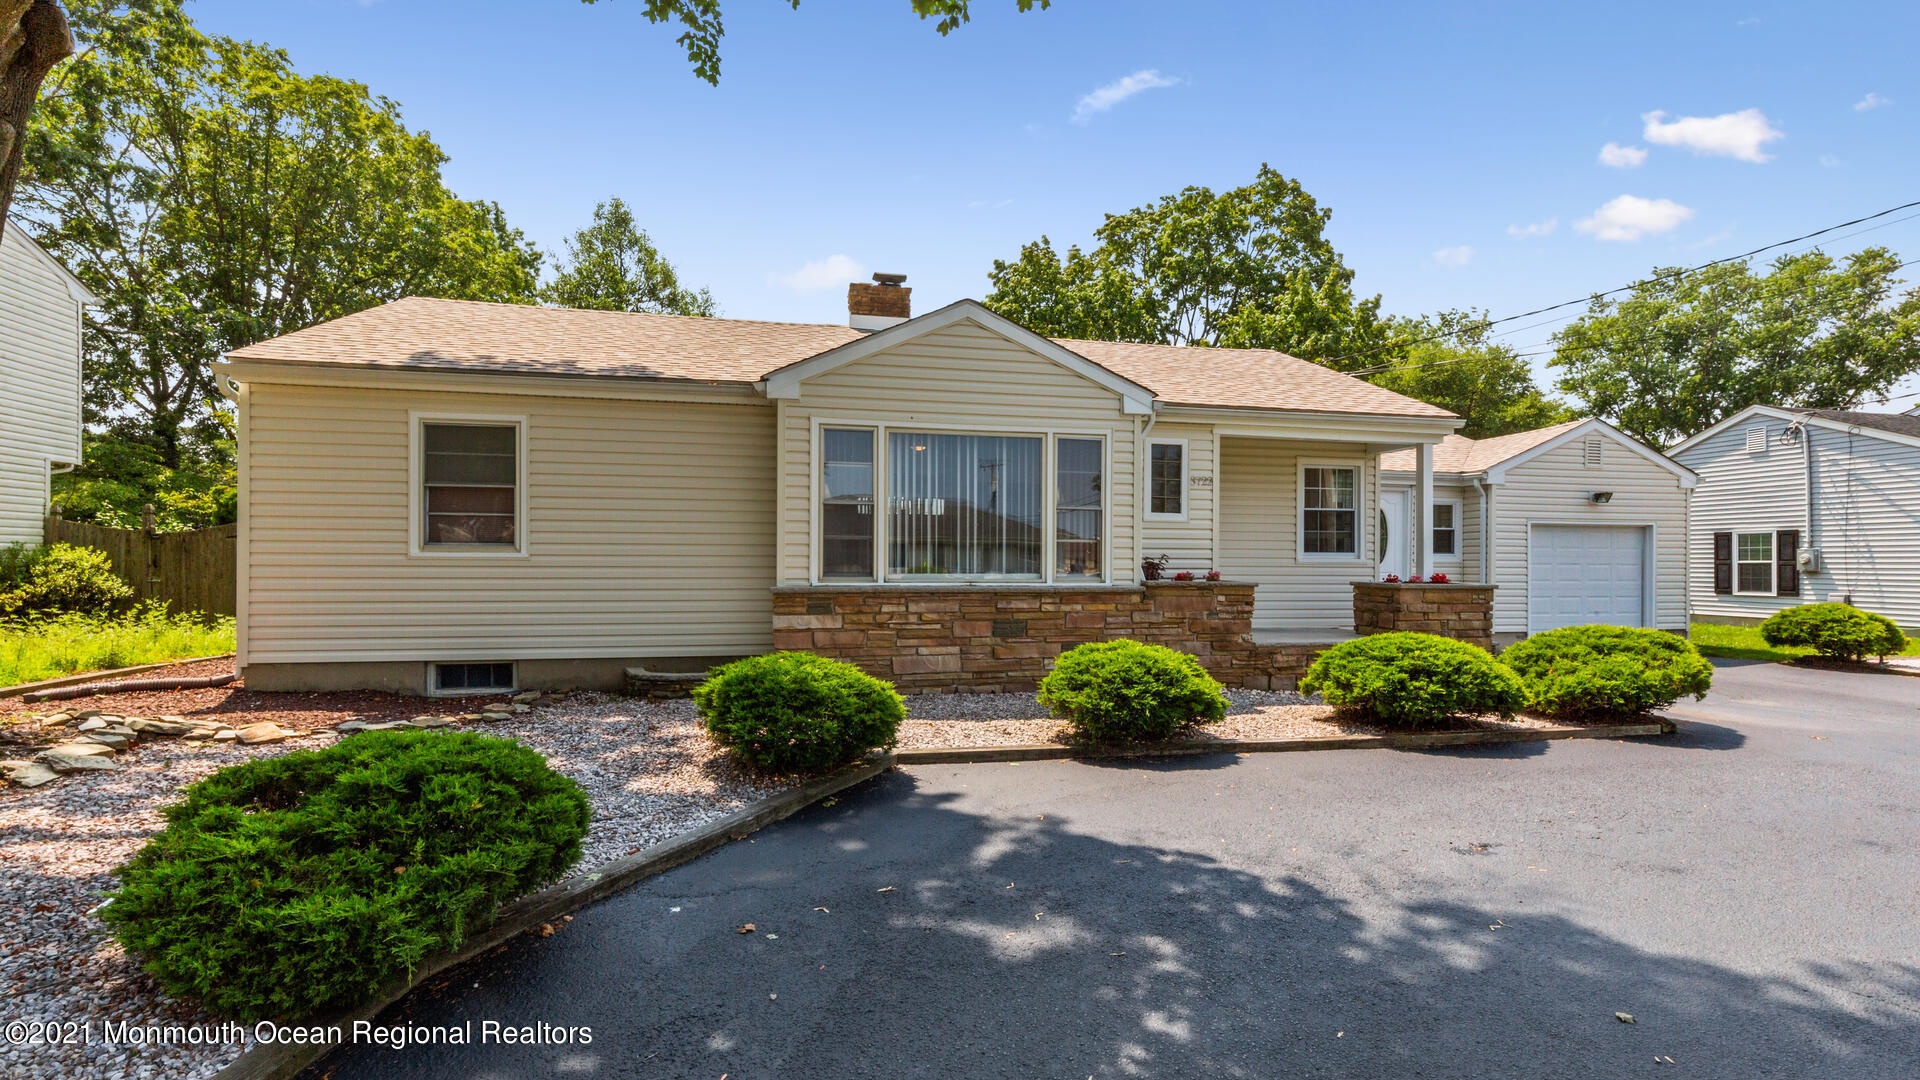 3722 River Road, Point Pleasant, New Jersey 08742, 3 Bedrooms Bedrooms, ,2 BathroomsBathrooms,Single Family,For Sale,3722 River Road,1,22125960